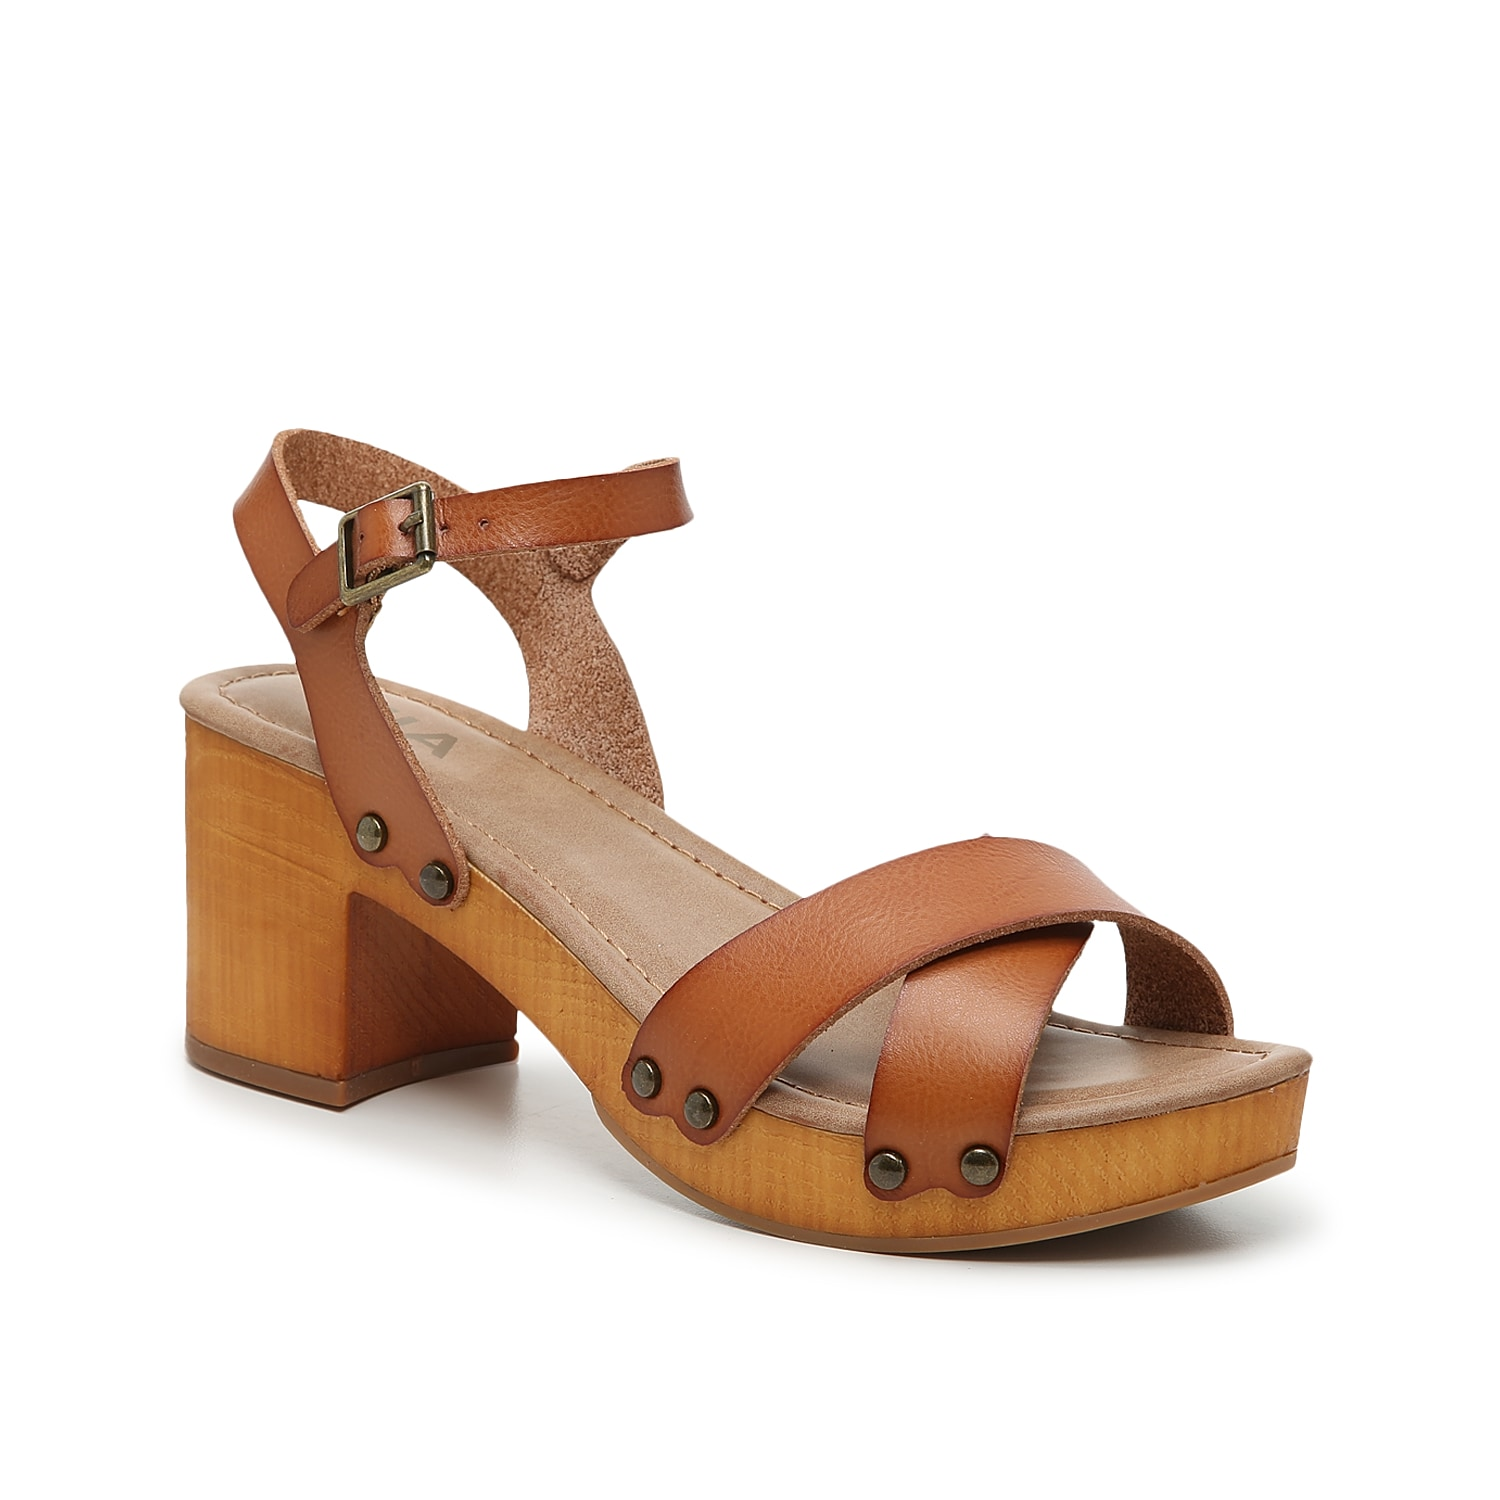 Bring your ensemble all the trendy looks with the susan platform sandal from Mia. This silhouette is fashioned with a crisscrossed toe strap and stud accents for edgy-intrigue!